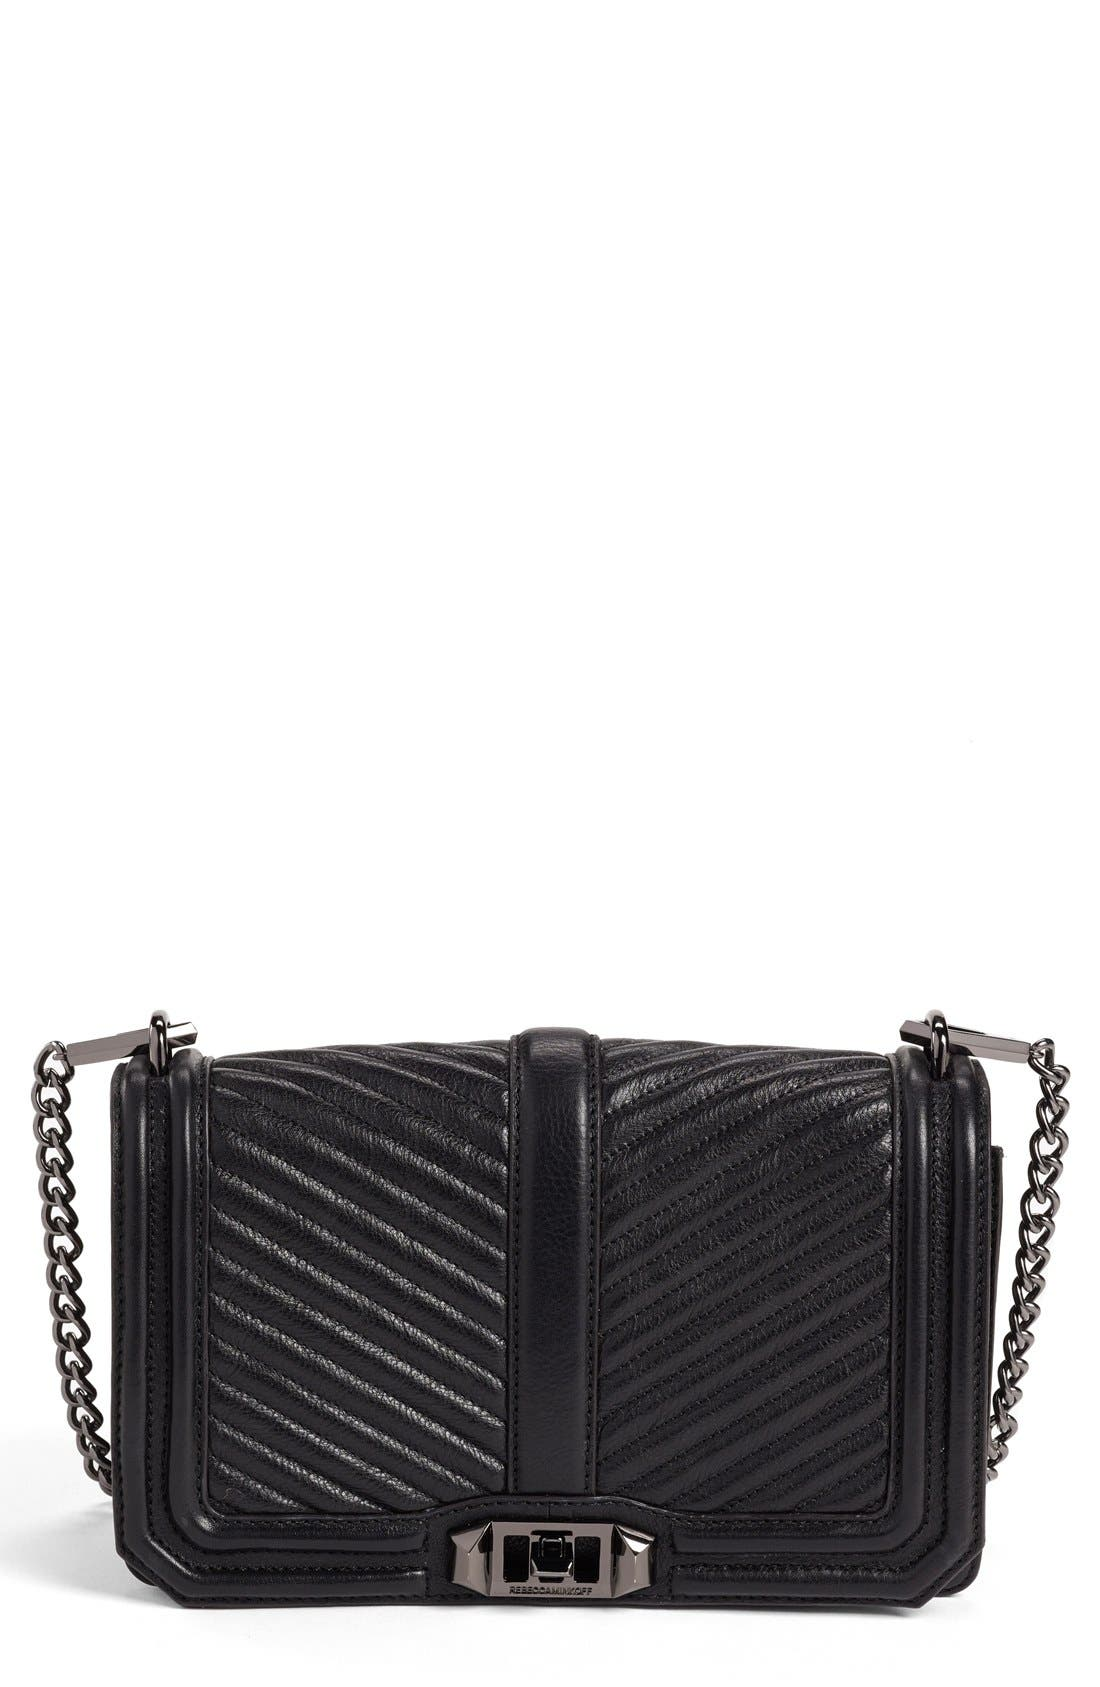 Main Image - Rebecca Minkoff 'Chevron Quilted Love' Crossbody Bag